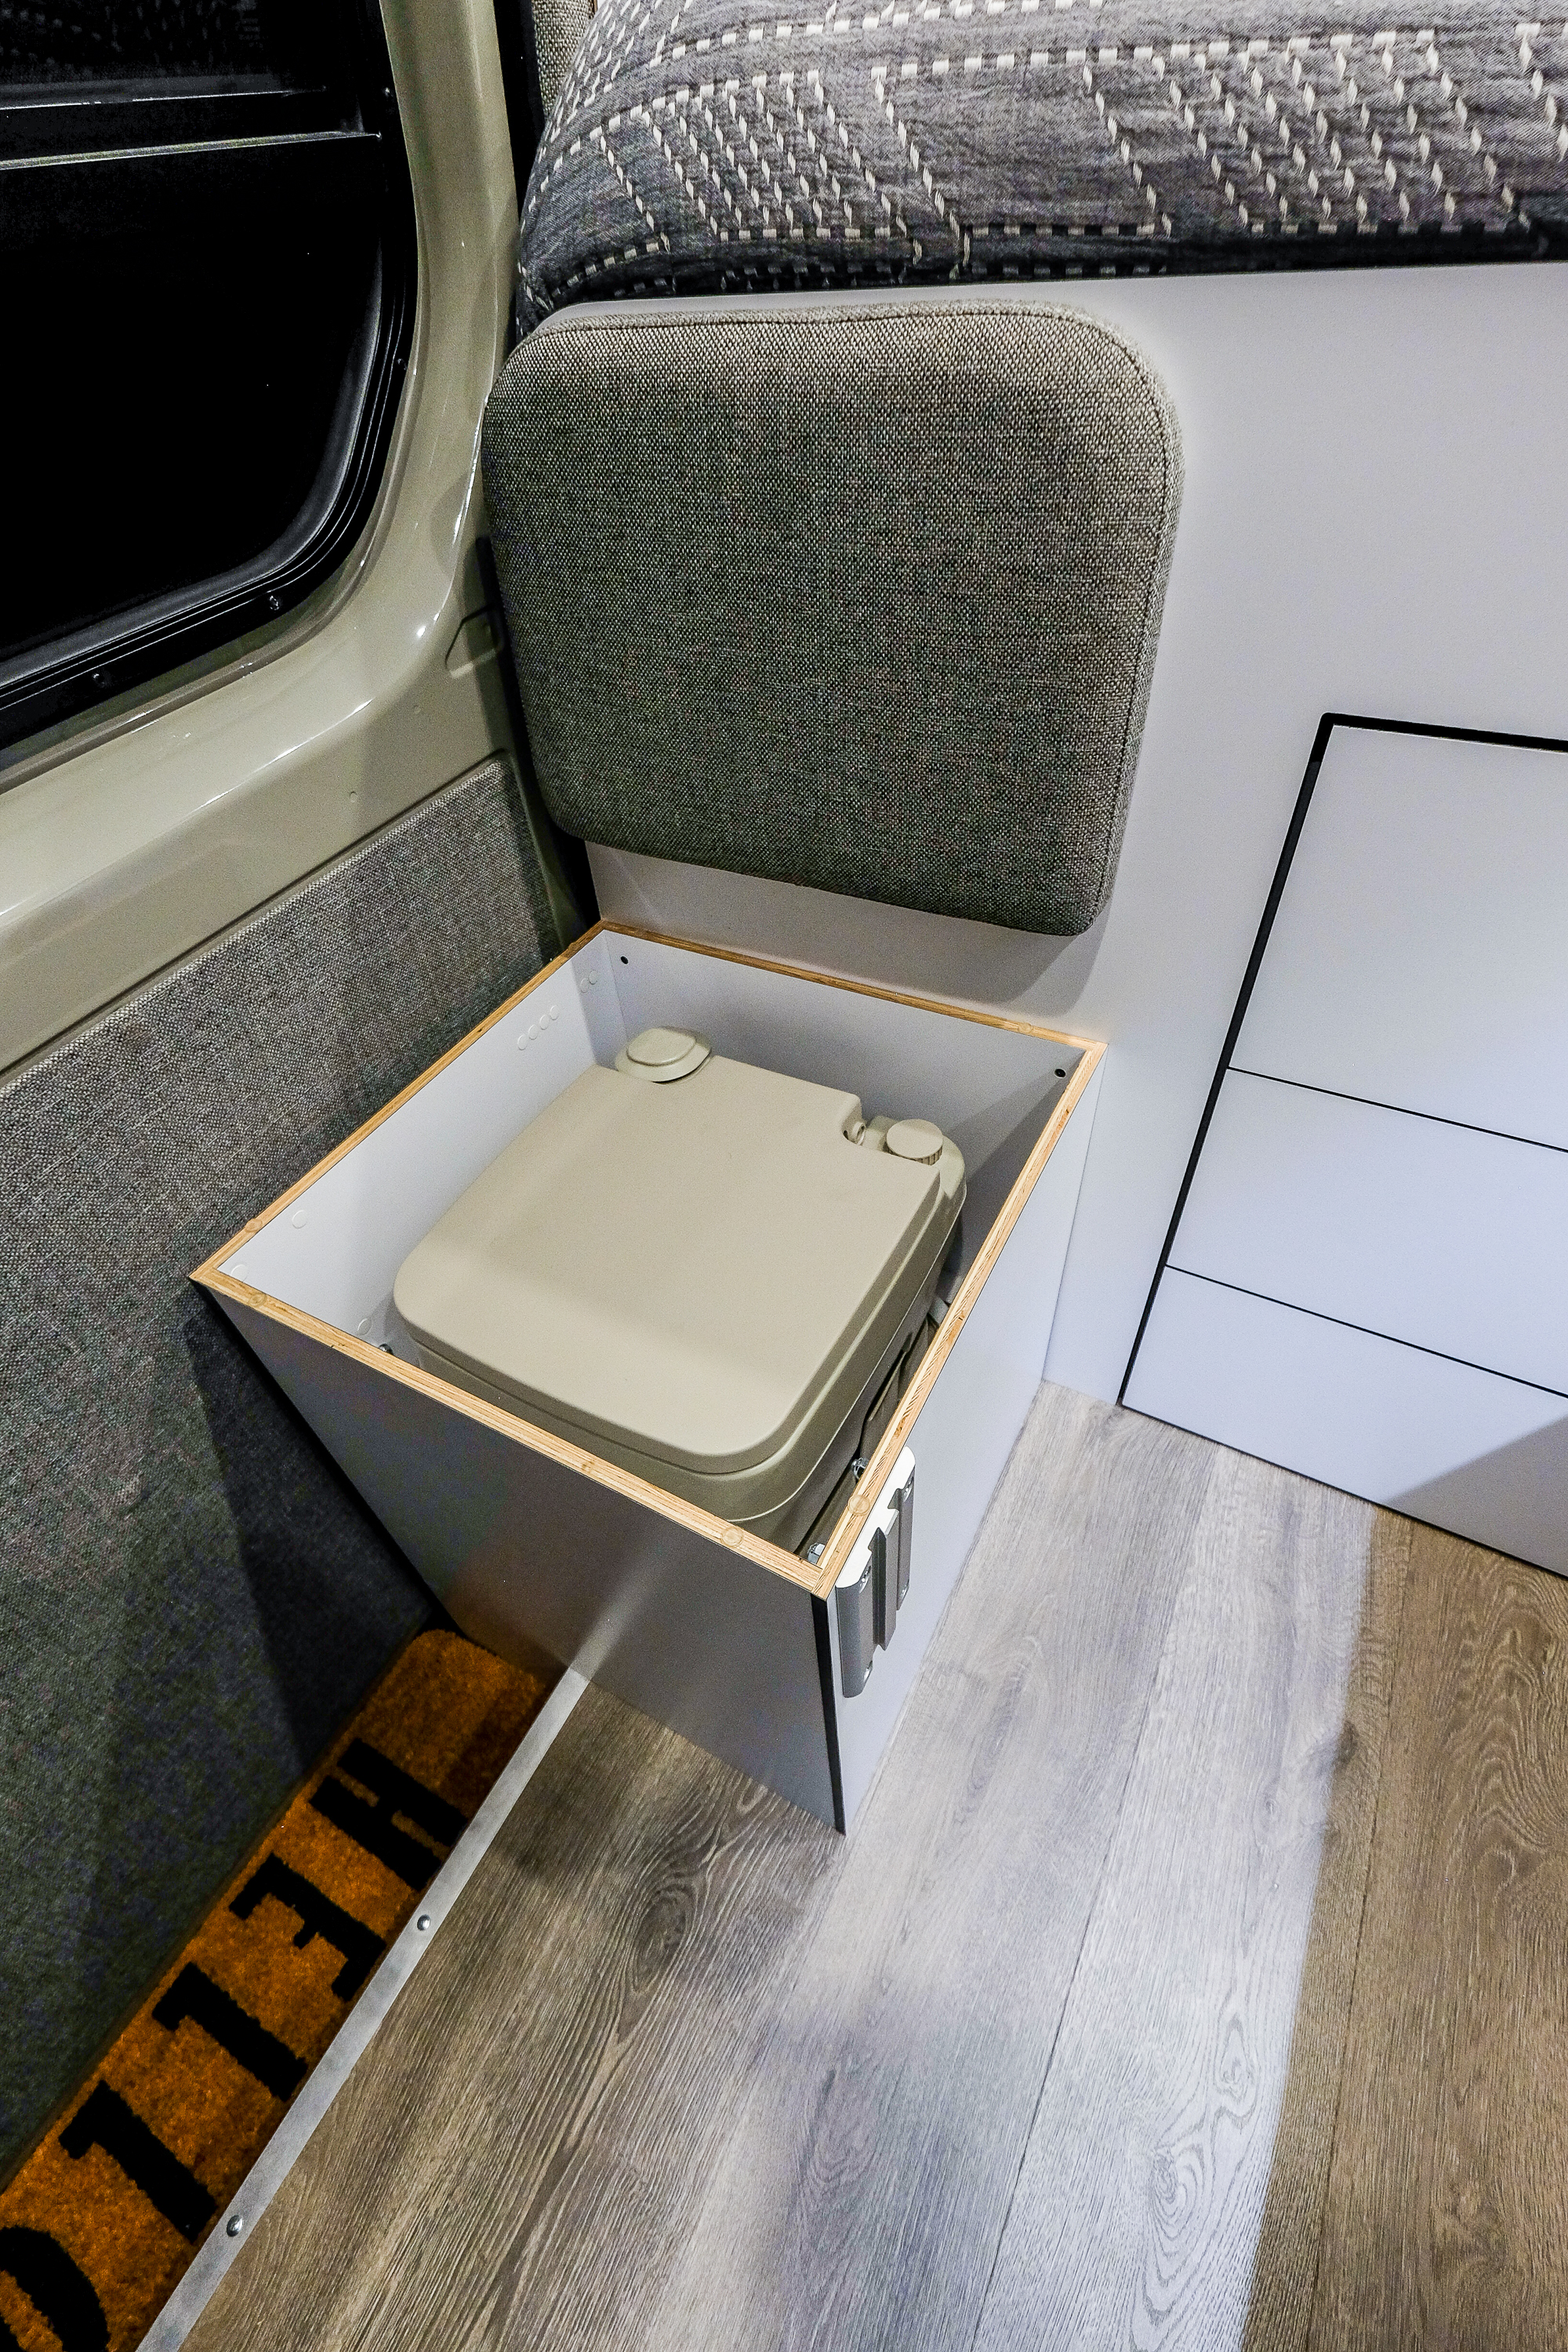 The jump seat has a hidden cassette toilet tucked neatly inside.